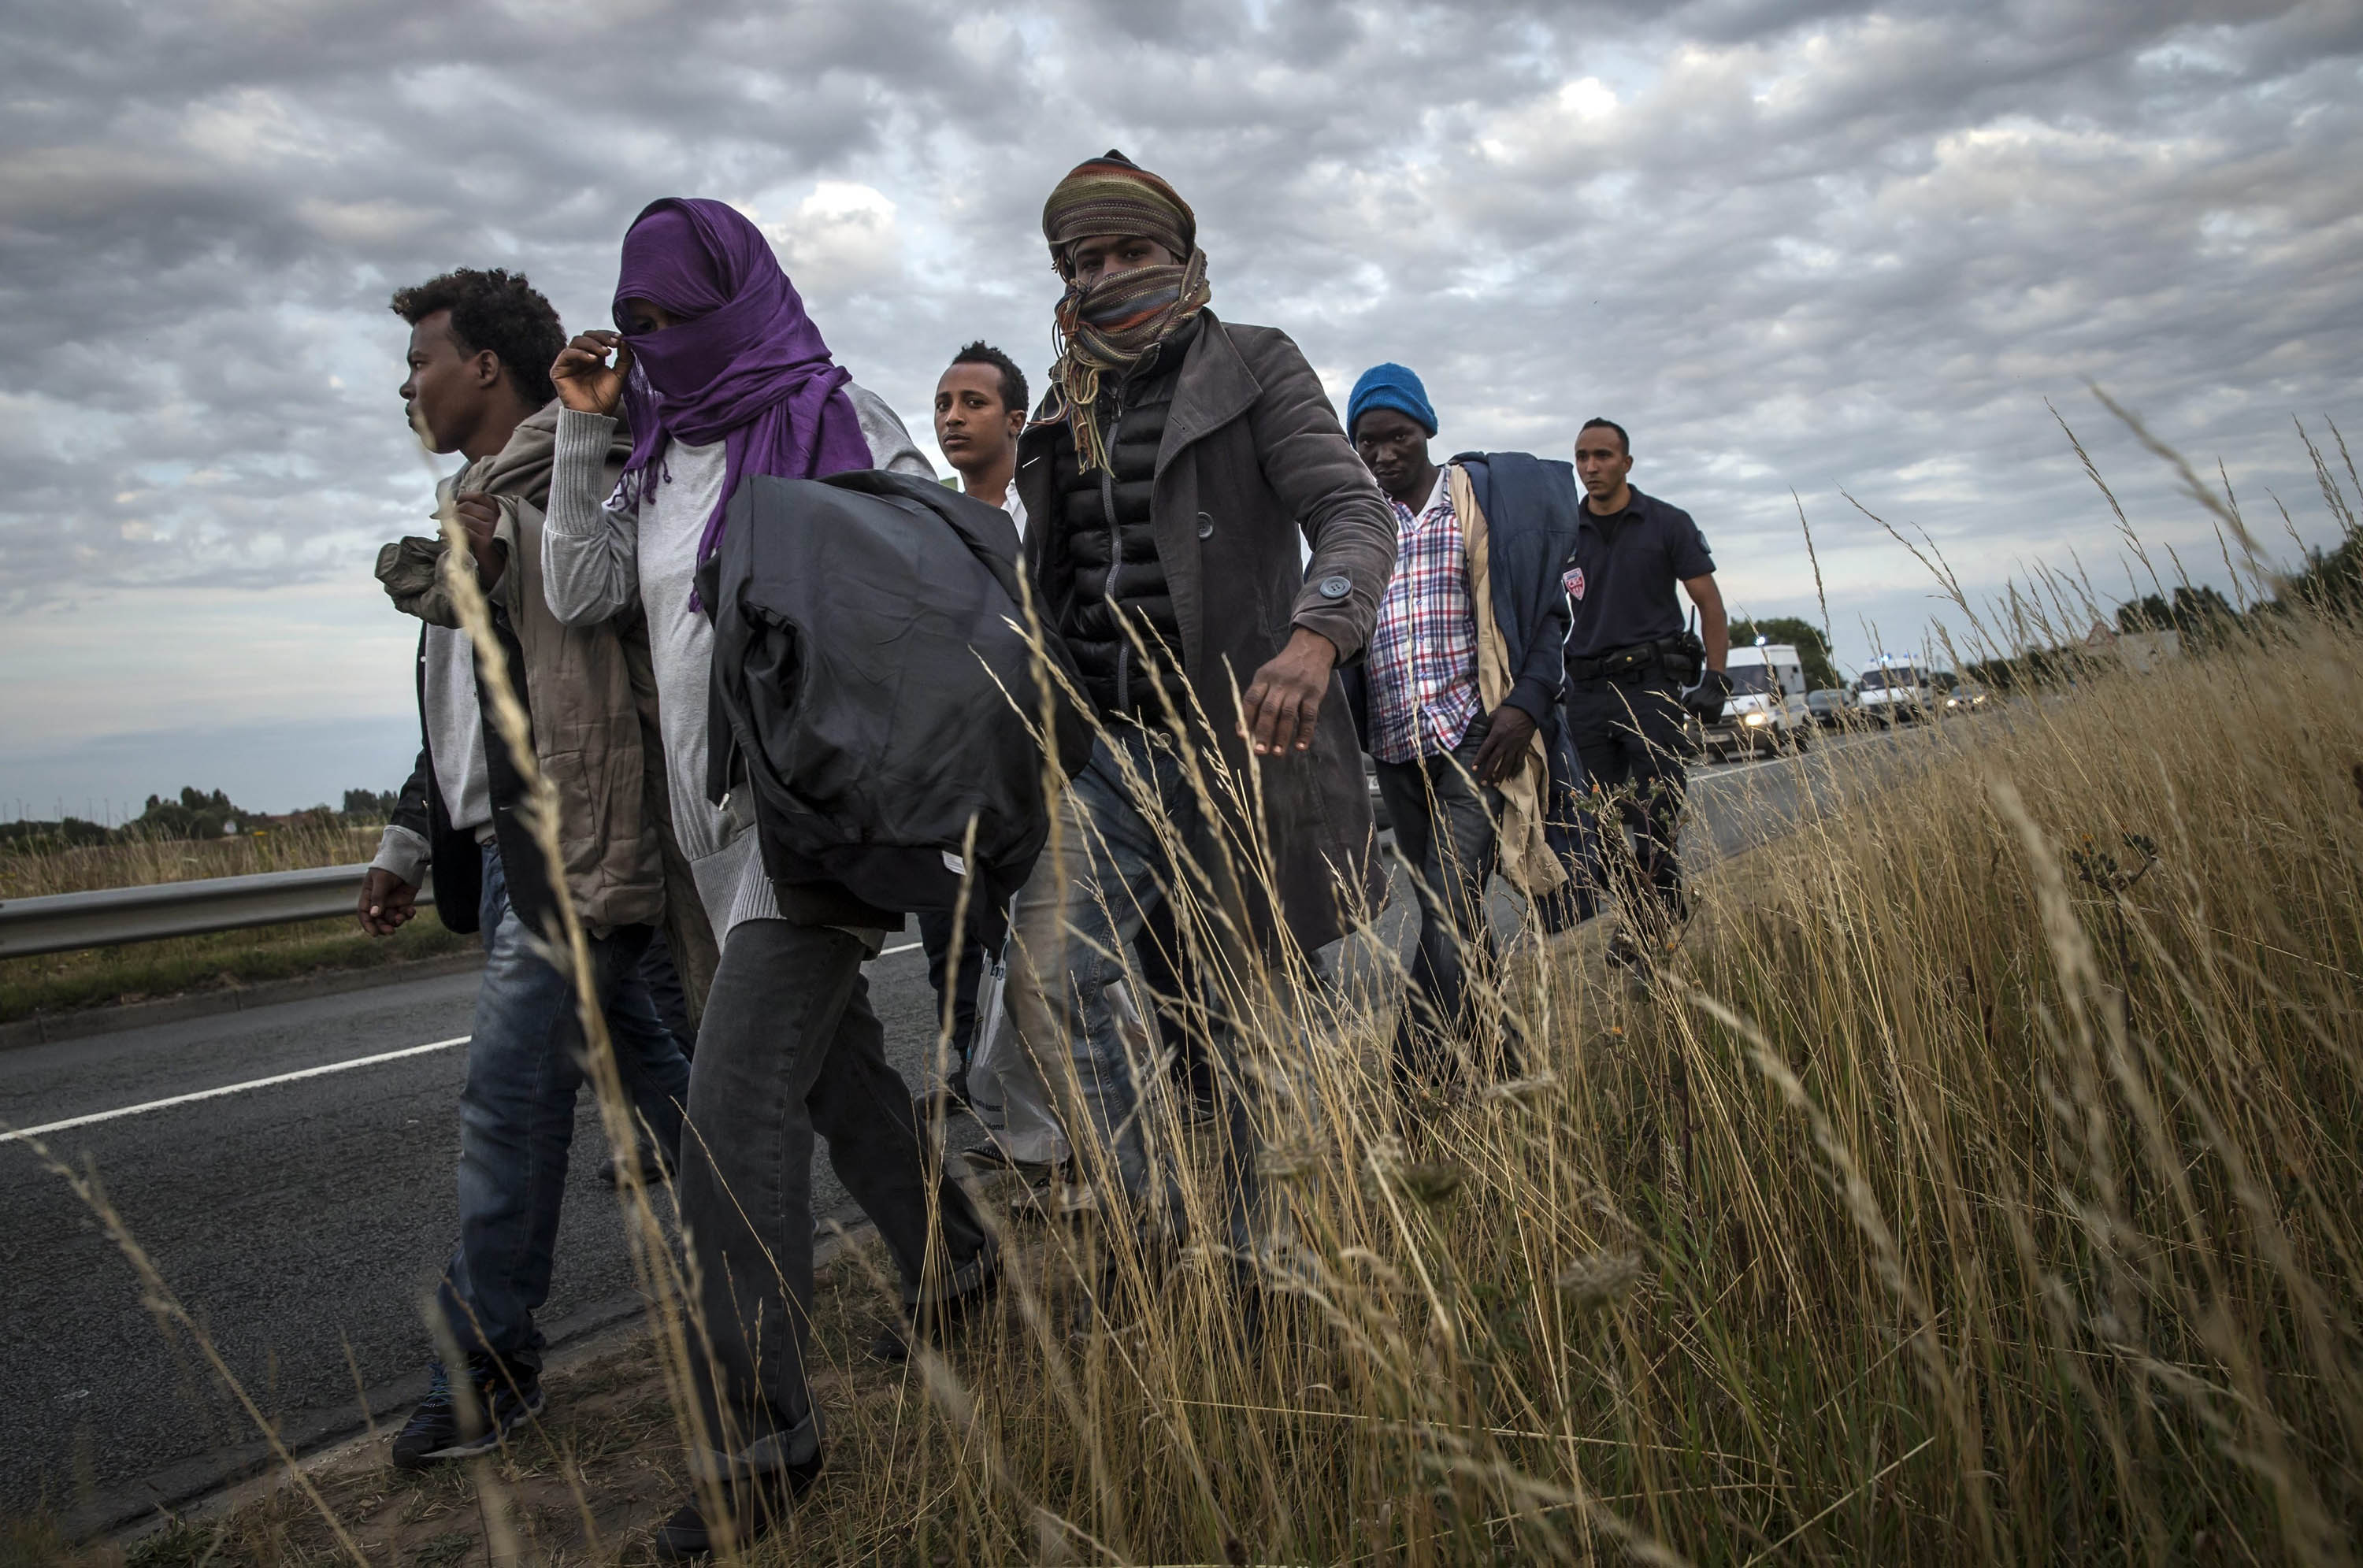 French police officers escort Eritrean migrants away from the Channel Tunnel entrance on Aug. 3.